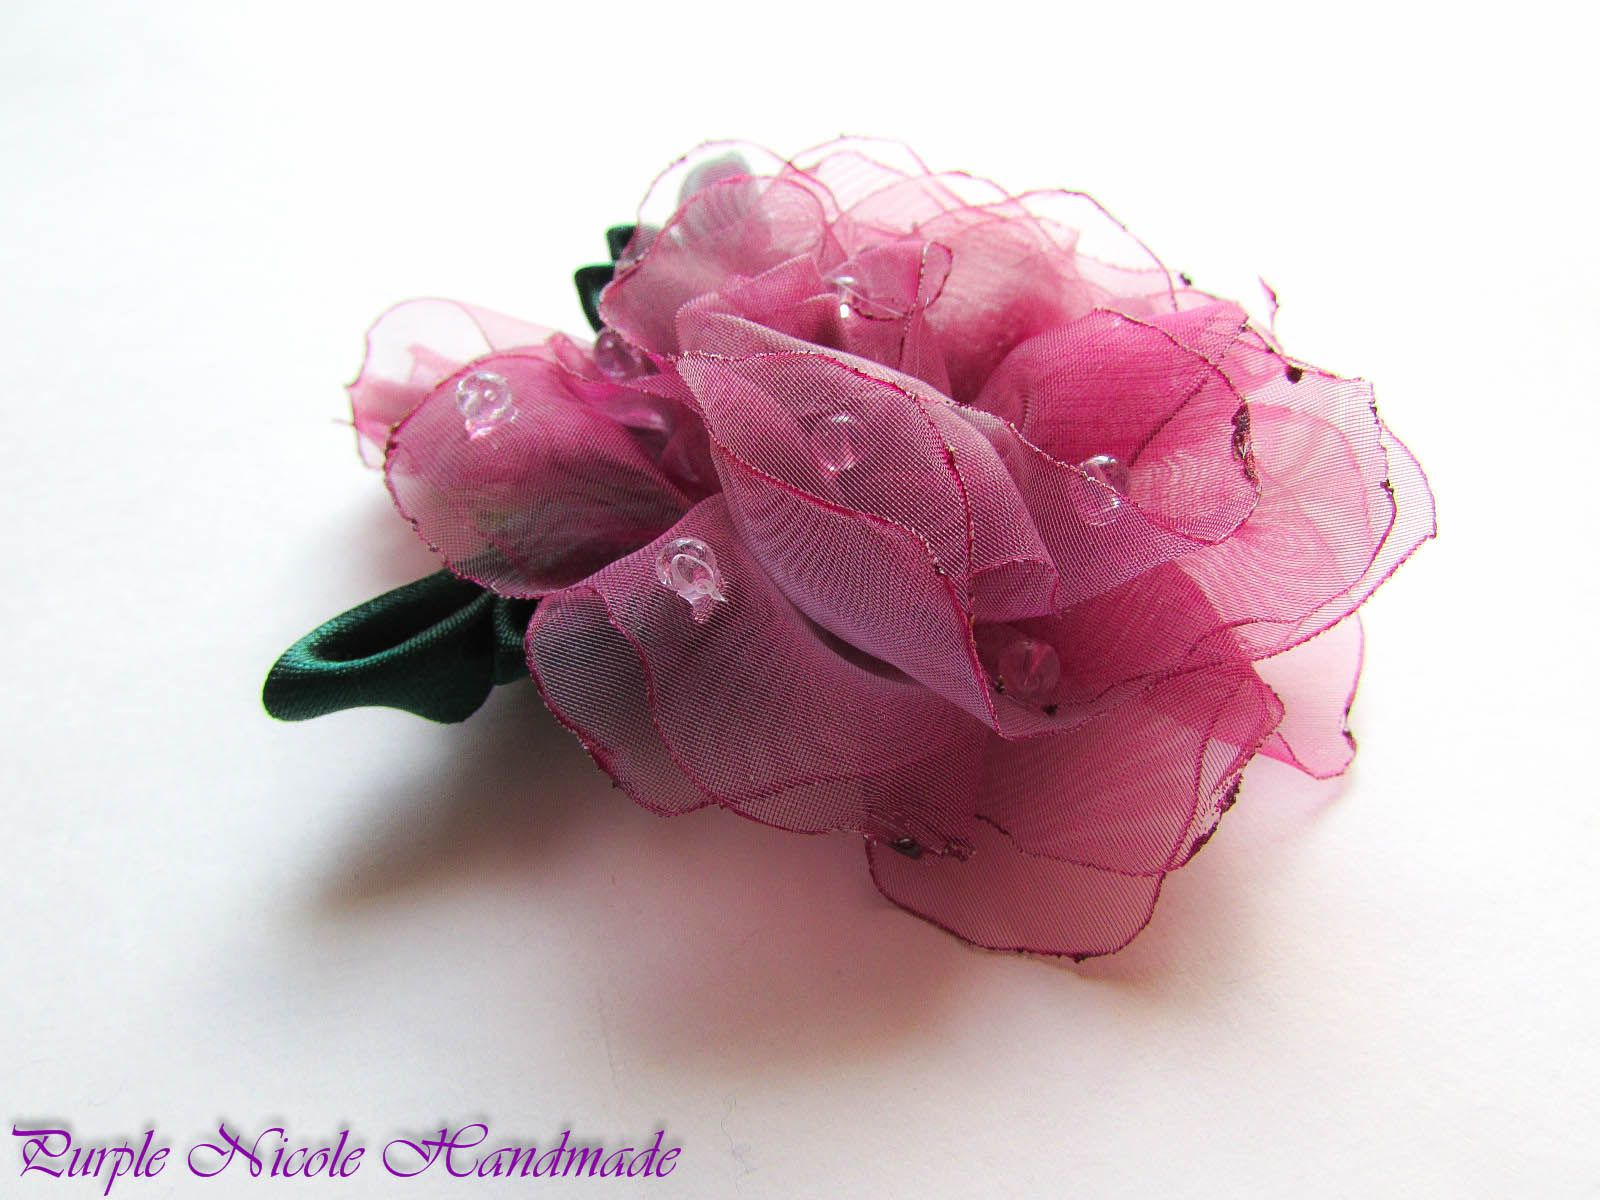 Morning Dew - Handmade Floral Broach by Purple Nicole (Nicole Cea Mov), colored handmade organza rose with satin leaves.